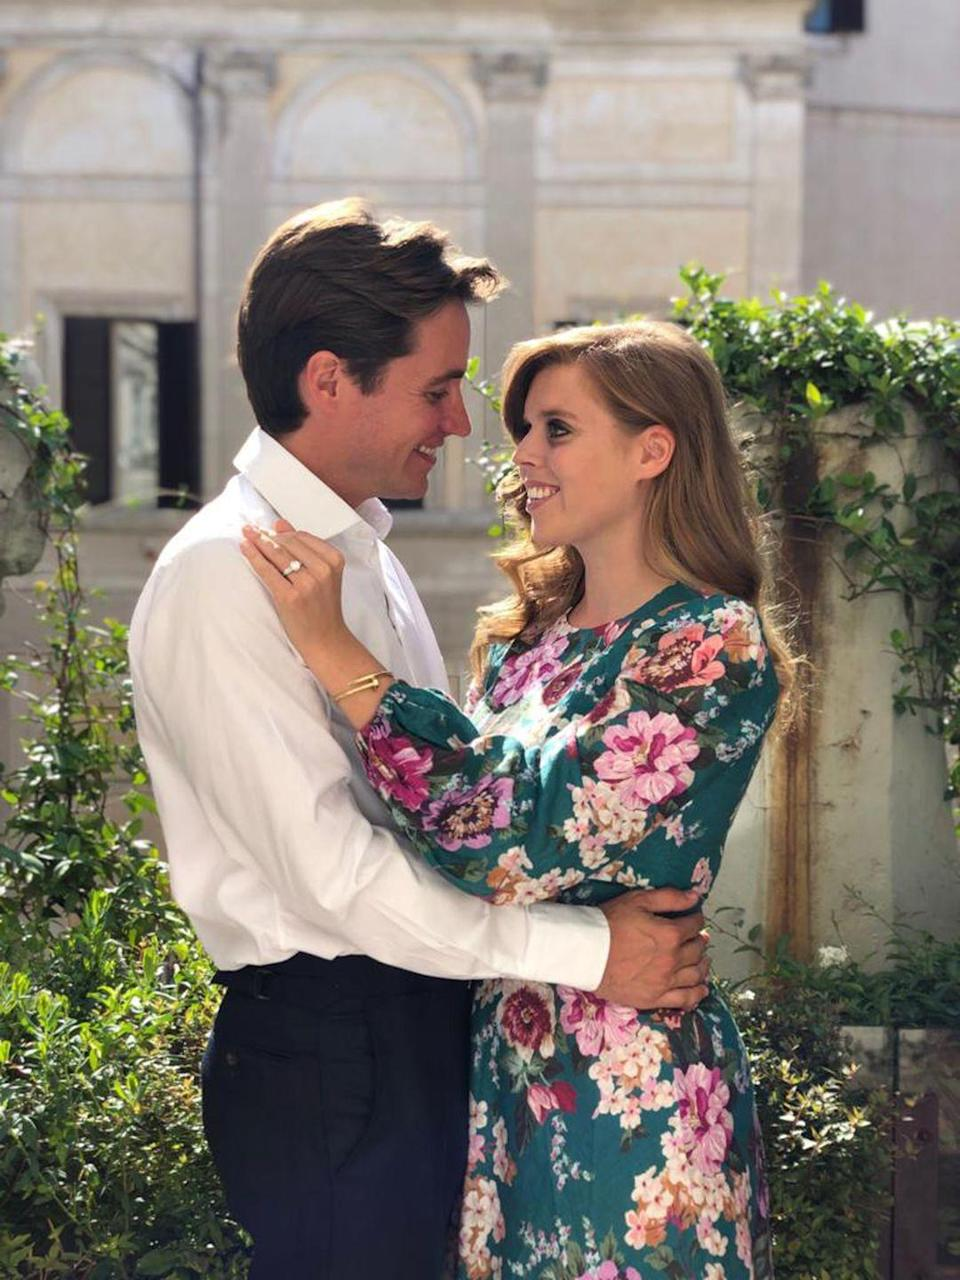 """<p>The couple <a href=""""https://www.townandcountrymag.com/society/tradition/a28861655/princess-beatrice-engaged-edoardo-mapelli-mozzi/"""" rel=""""nofollow noopener"""" target=""""_blank"""" data-ylk=""""slk:announced their official engagement"""" class=""""link rapid-noclick-resp"""">announced their official engagement</a> with beautiful photos taken by Princess Eugenie. Here they are looking into each other's eyes.</p>"""